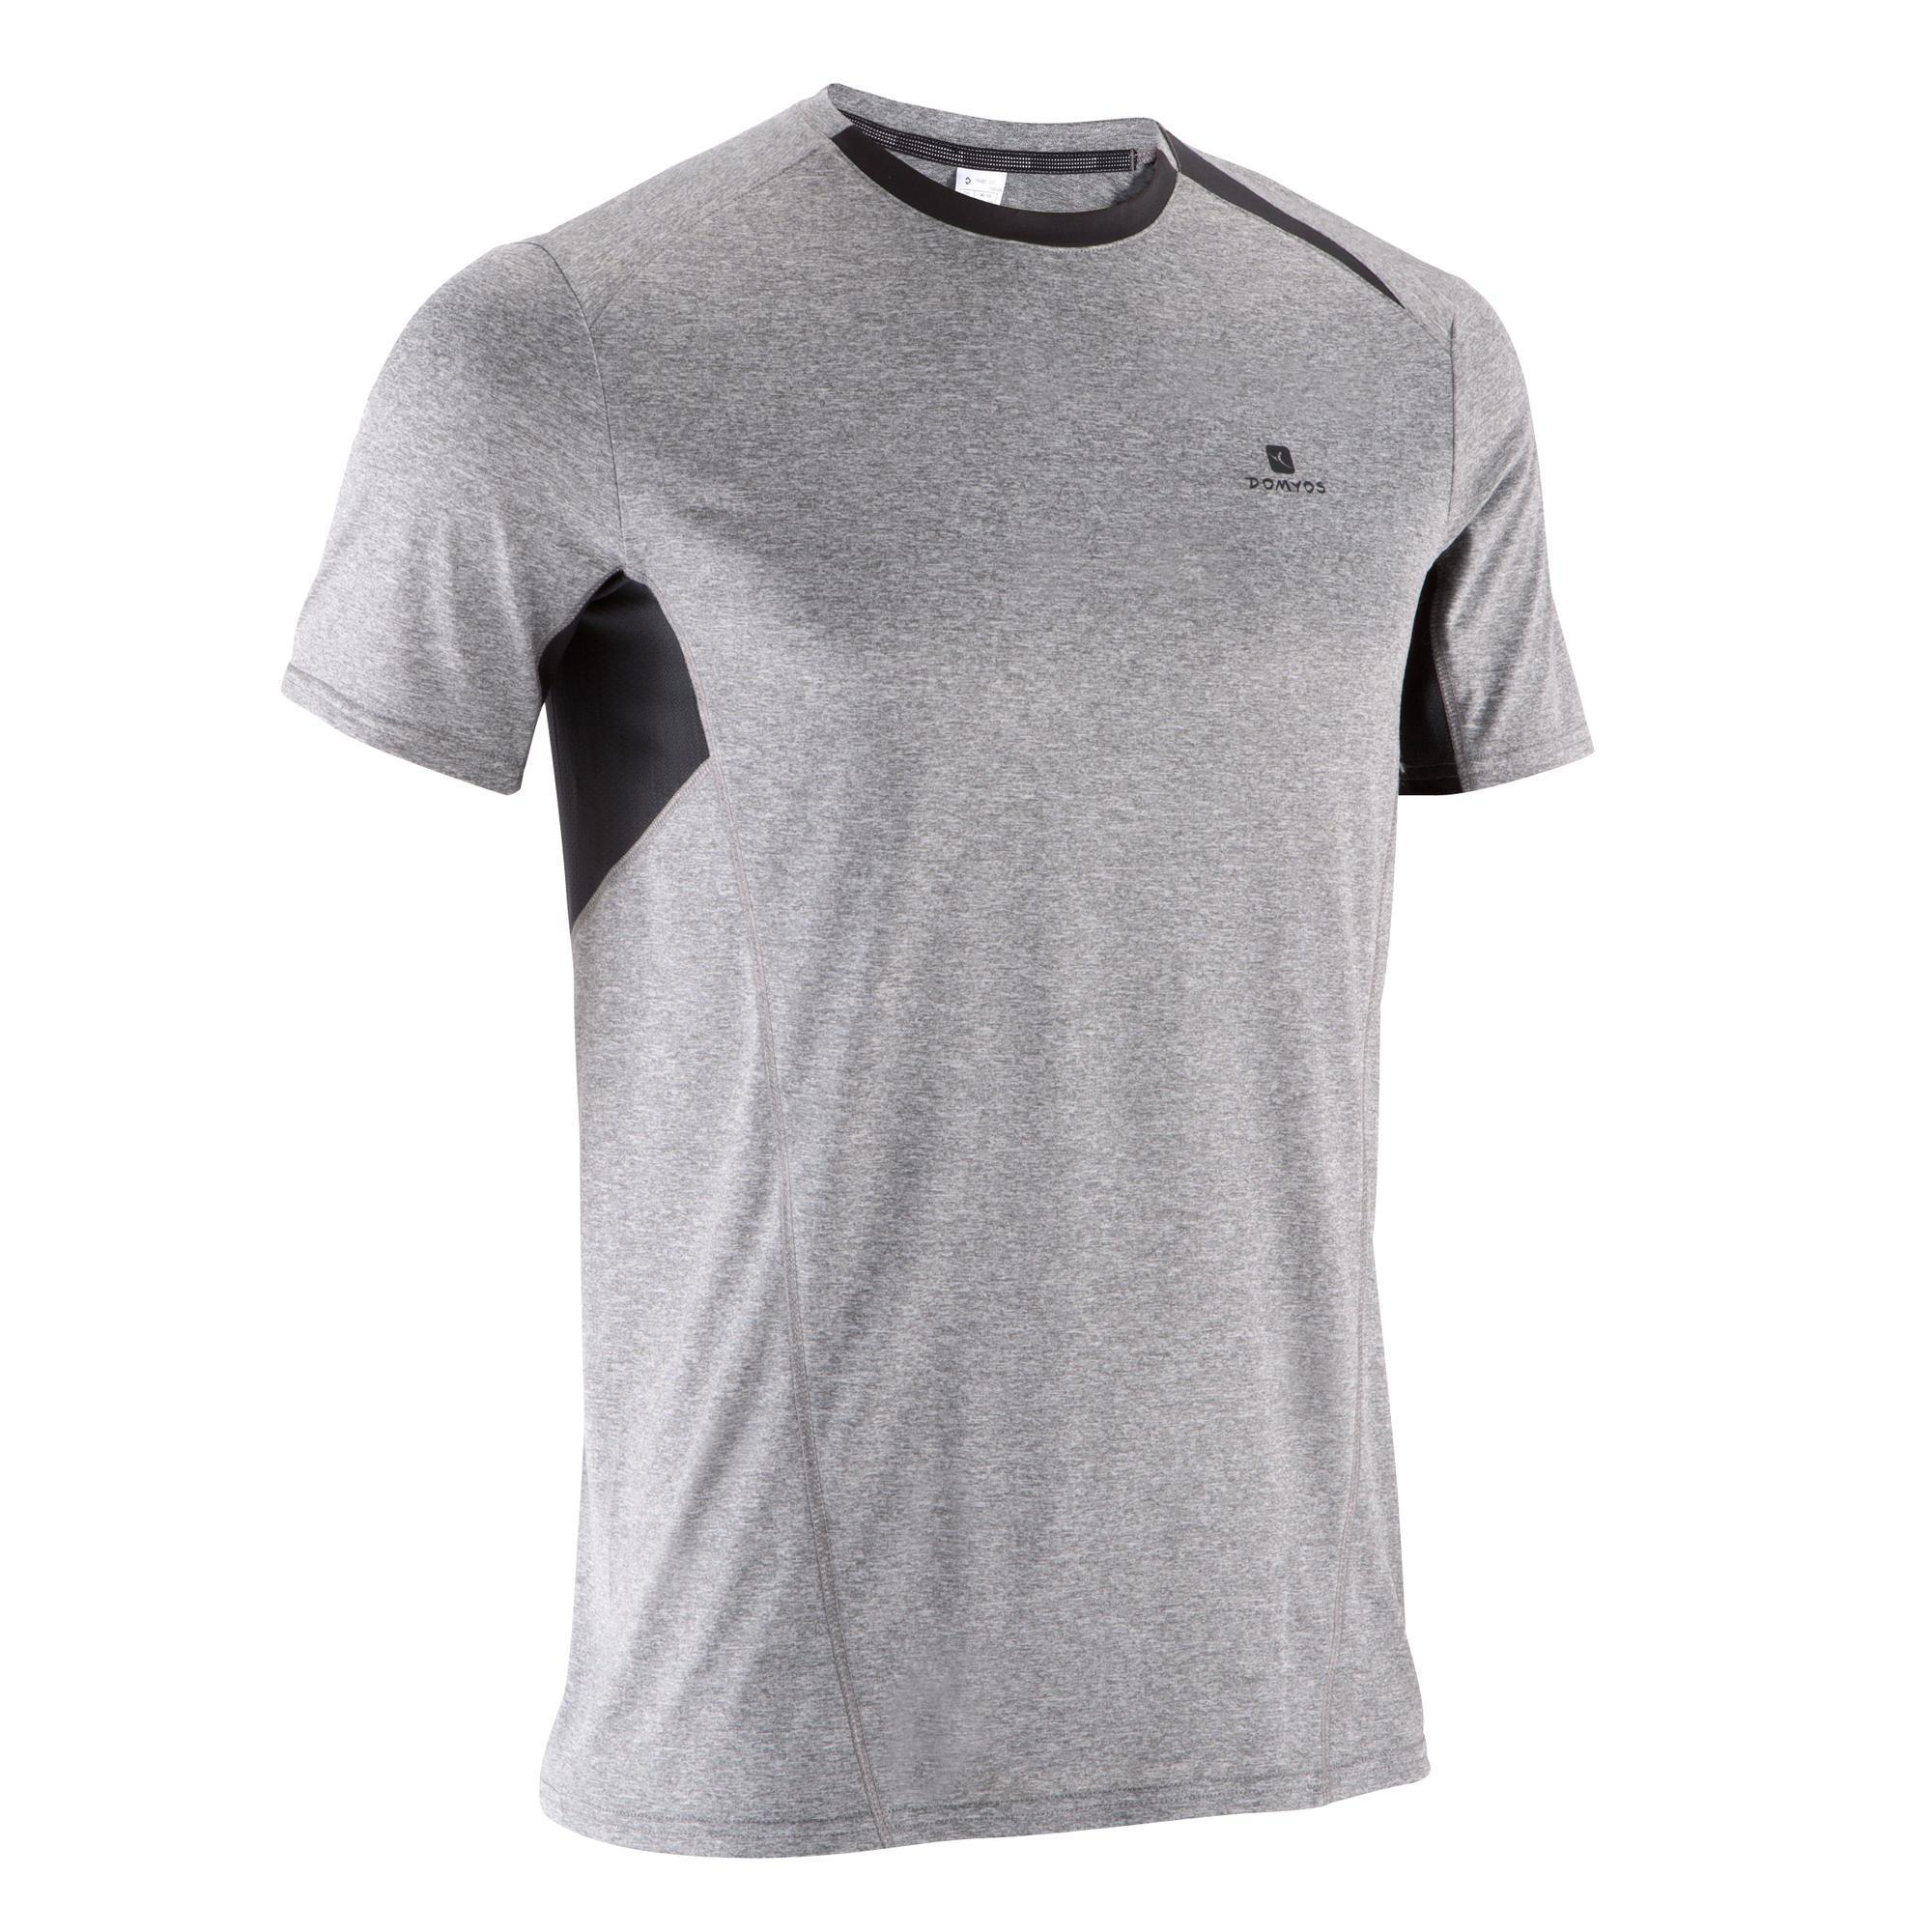 tee shirt light breathe fitness homme gris chin clair imprim domyos by decathlon. Black Bedroom Furniture Sets. Home Design Ideas